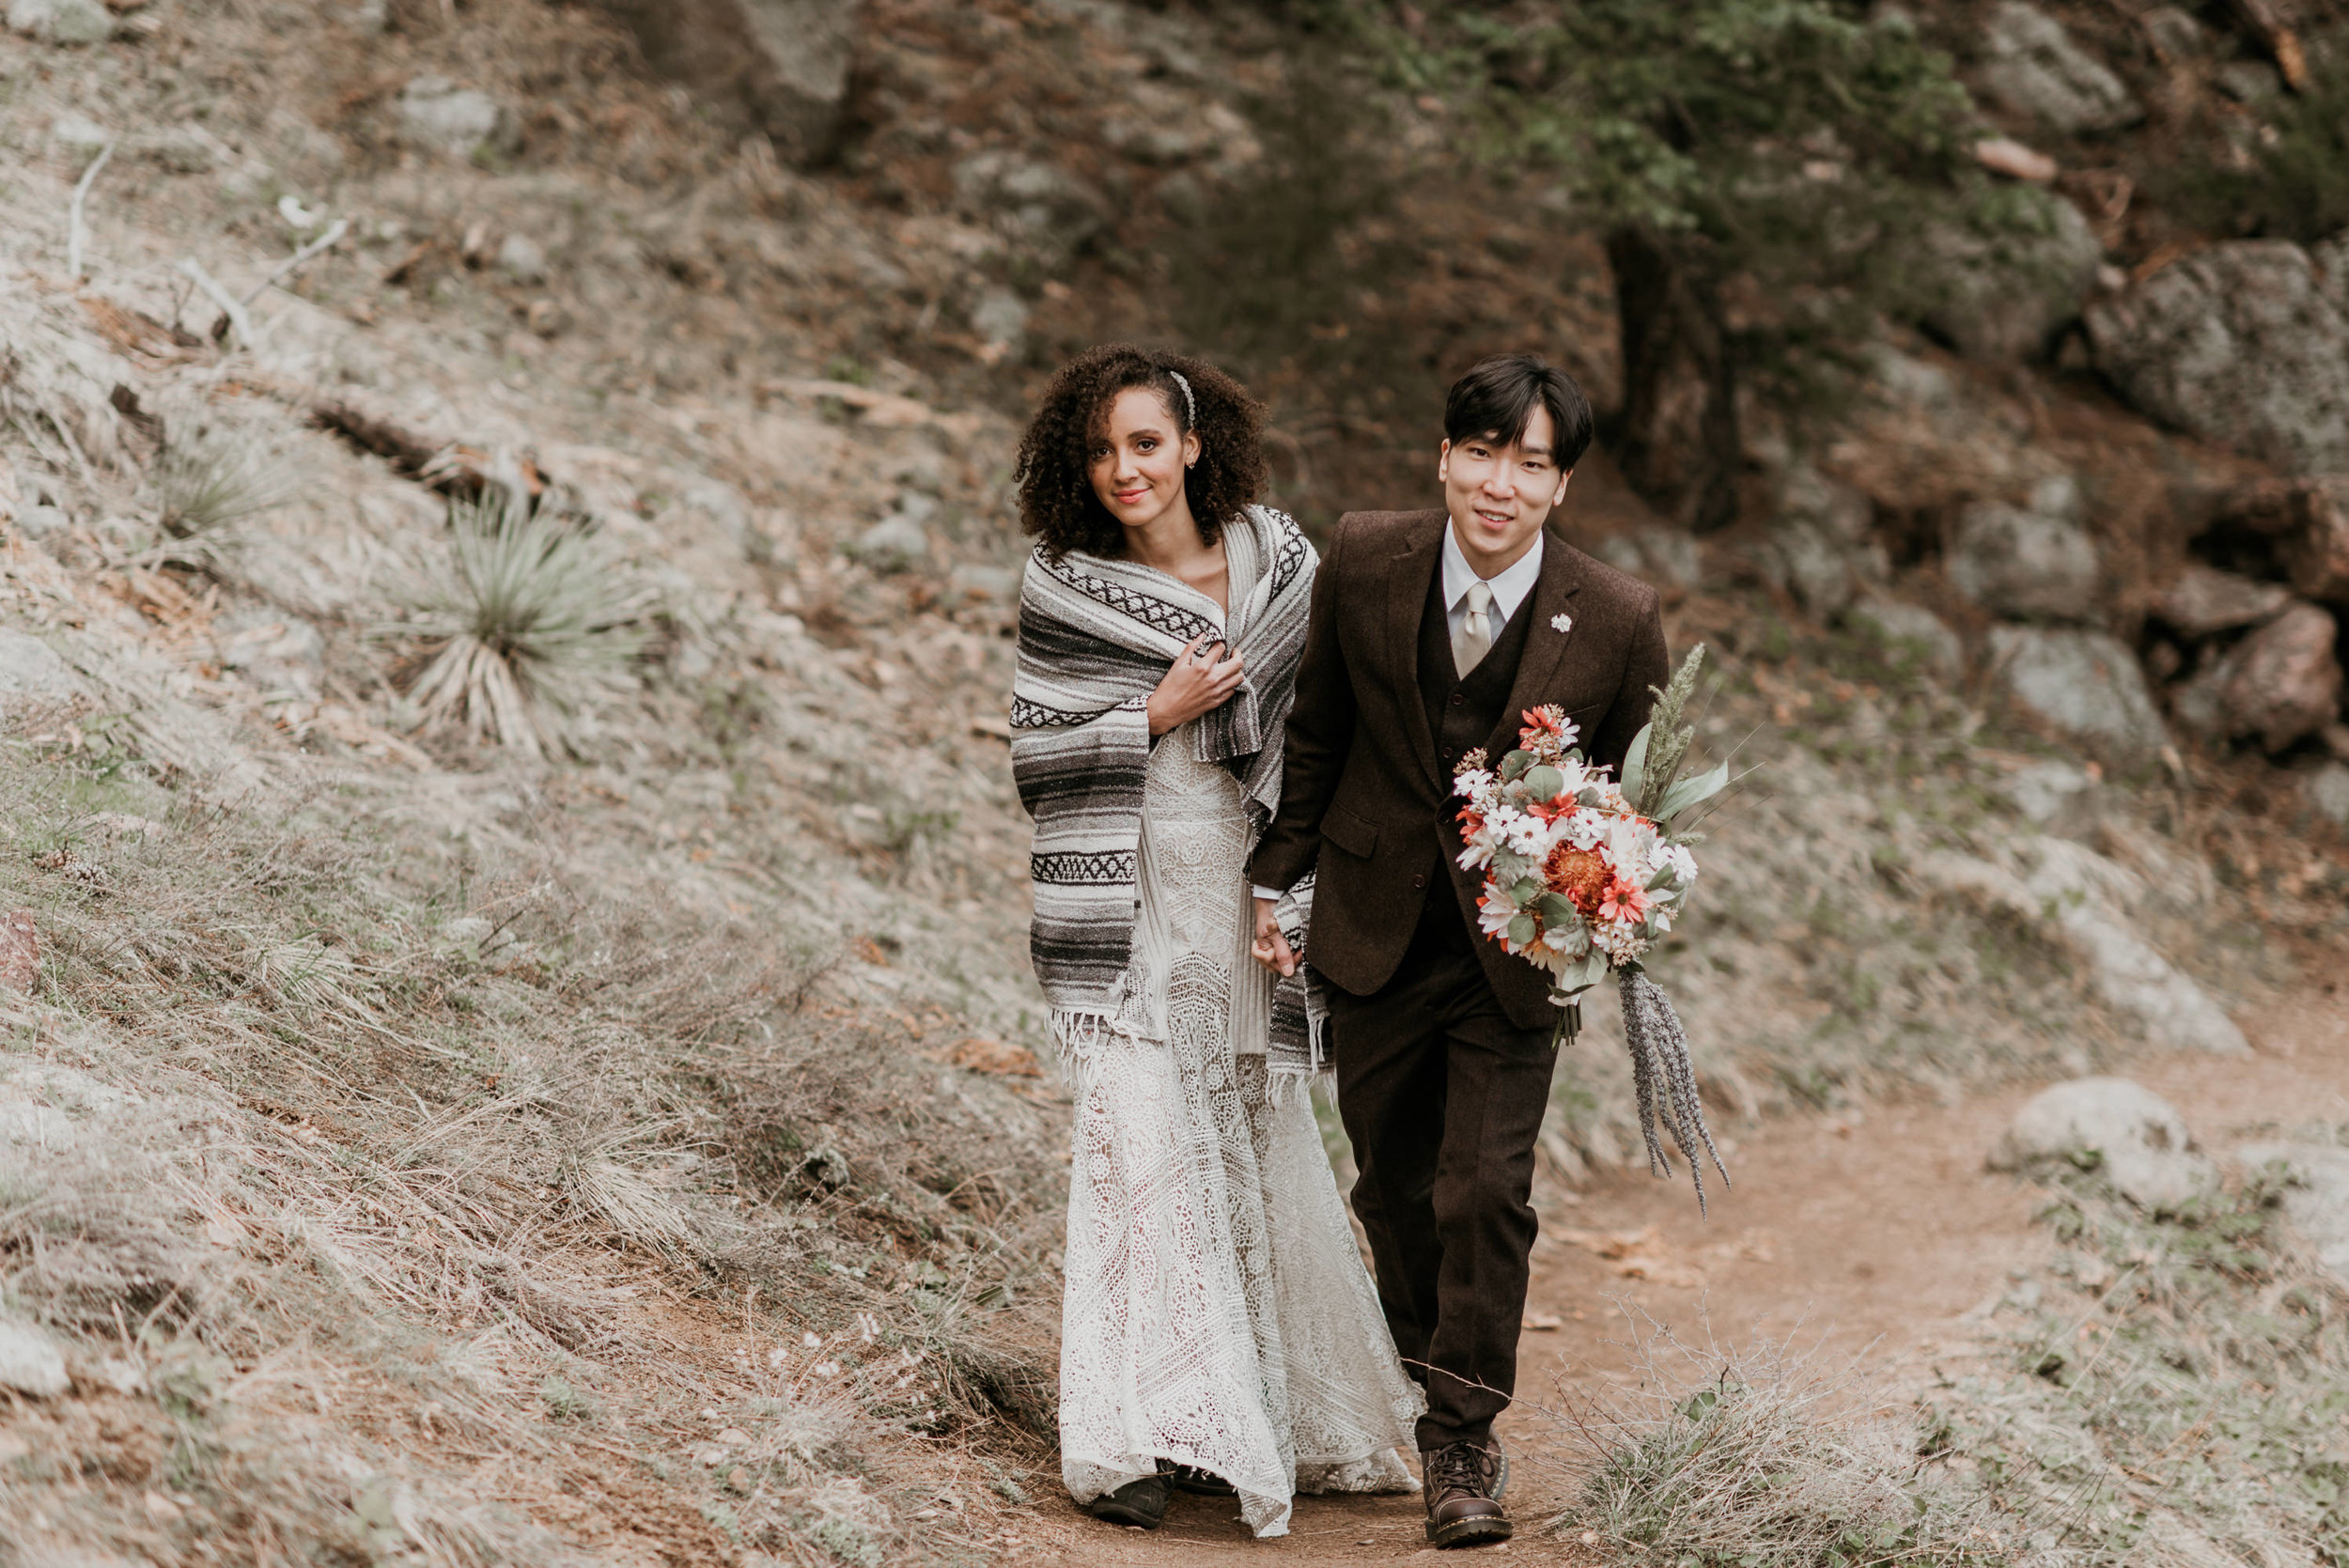 Daniel smiles at the camera as they hike to the wedding spot.